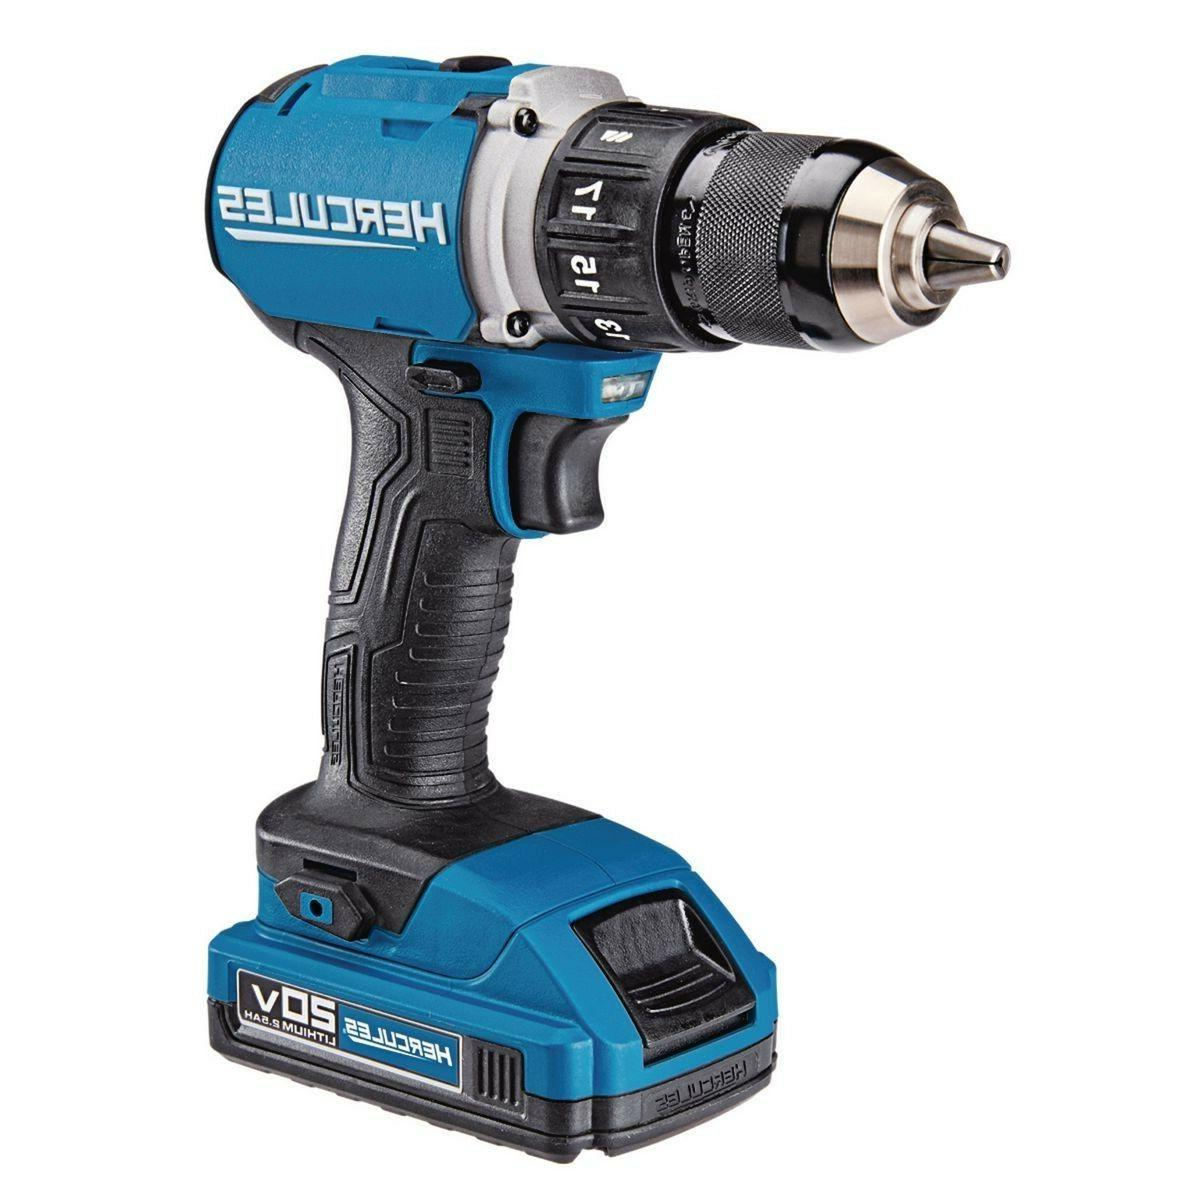 20V Lithium Ion Cordless Compact Drill/Driver Lightweight Duty Nu